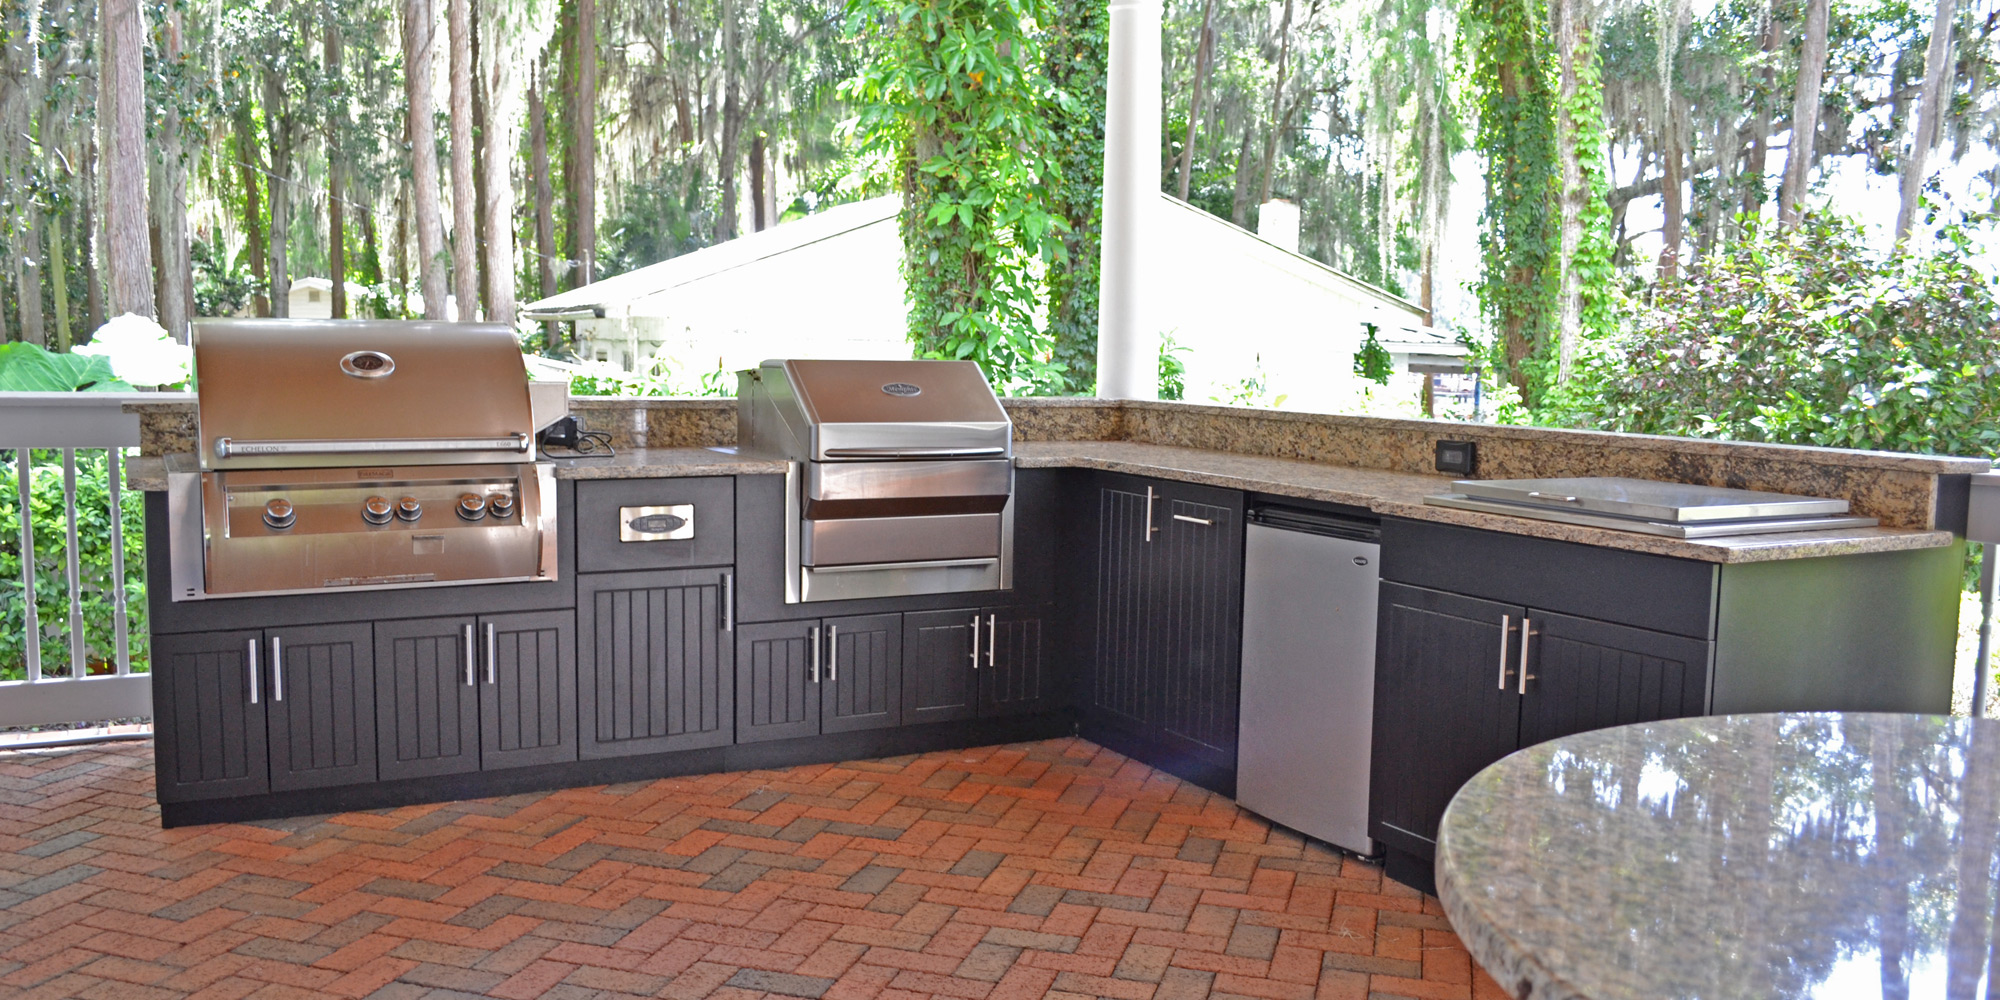 Premium-Polymer-Outdoor-Kitchen-Black_2000x1000_001.jpg